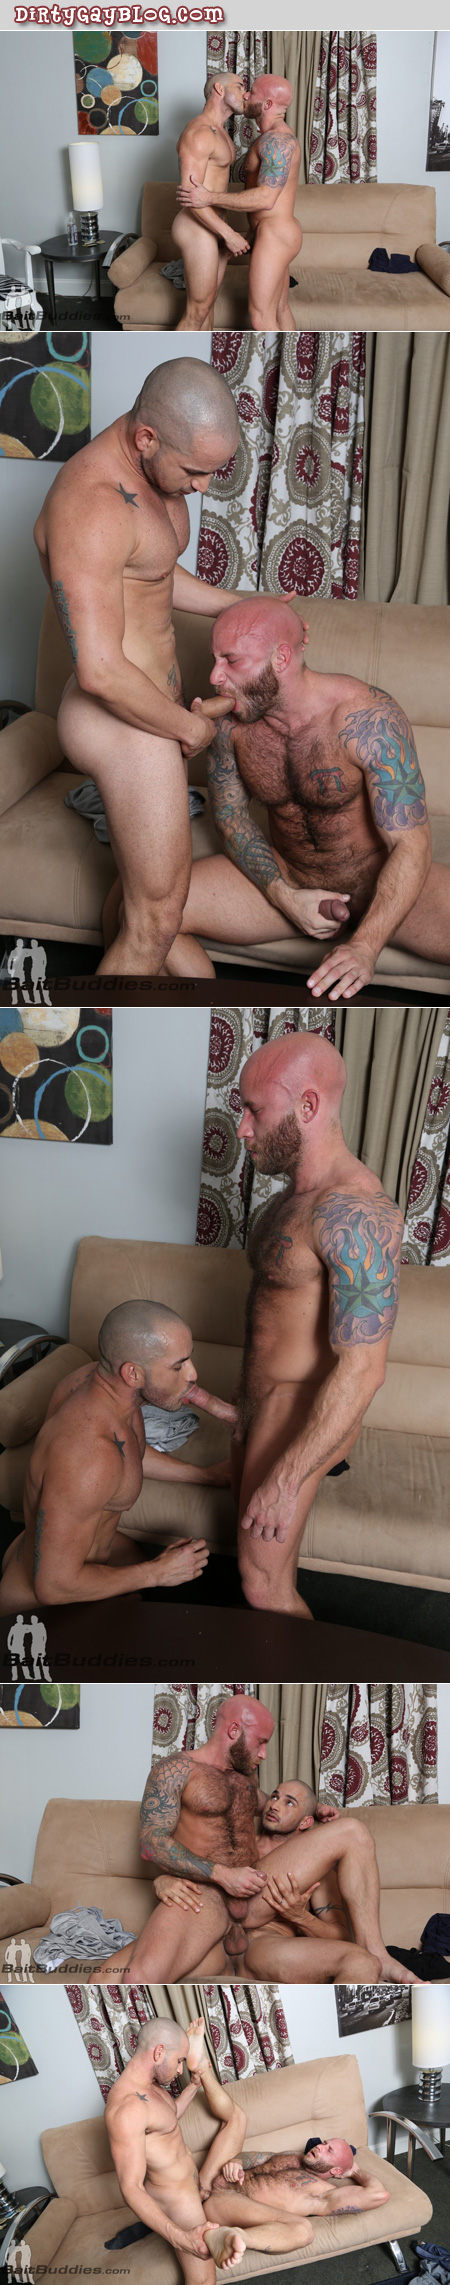 Straight Latino hunk fucking a very hairy muscle stud in the ass.